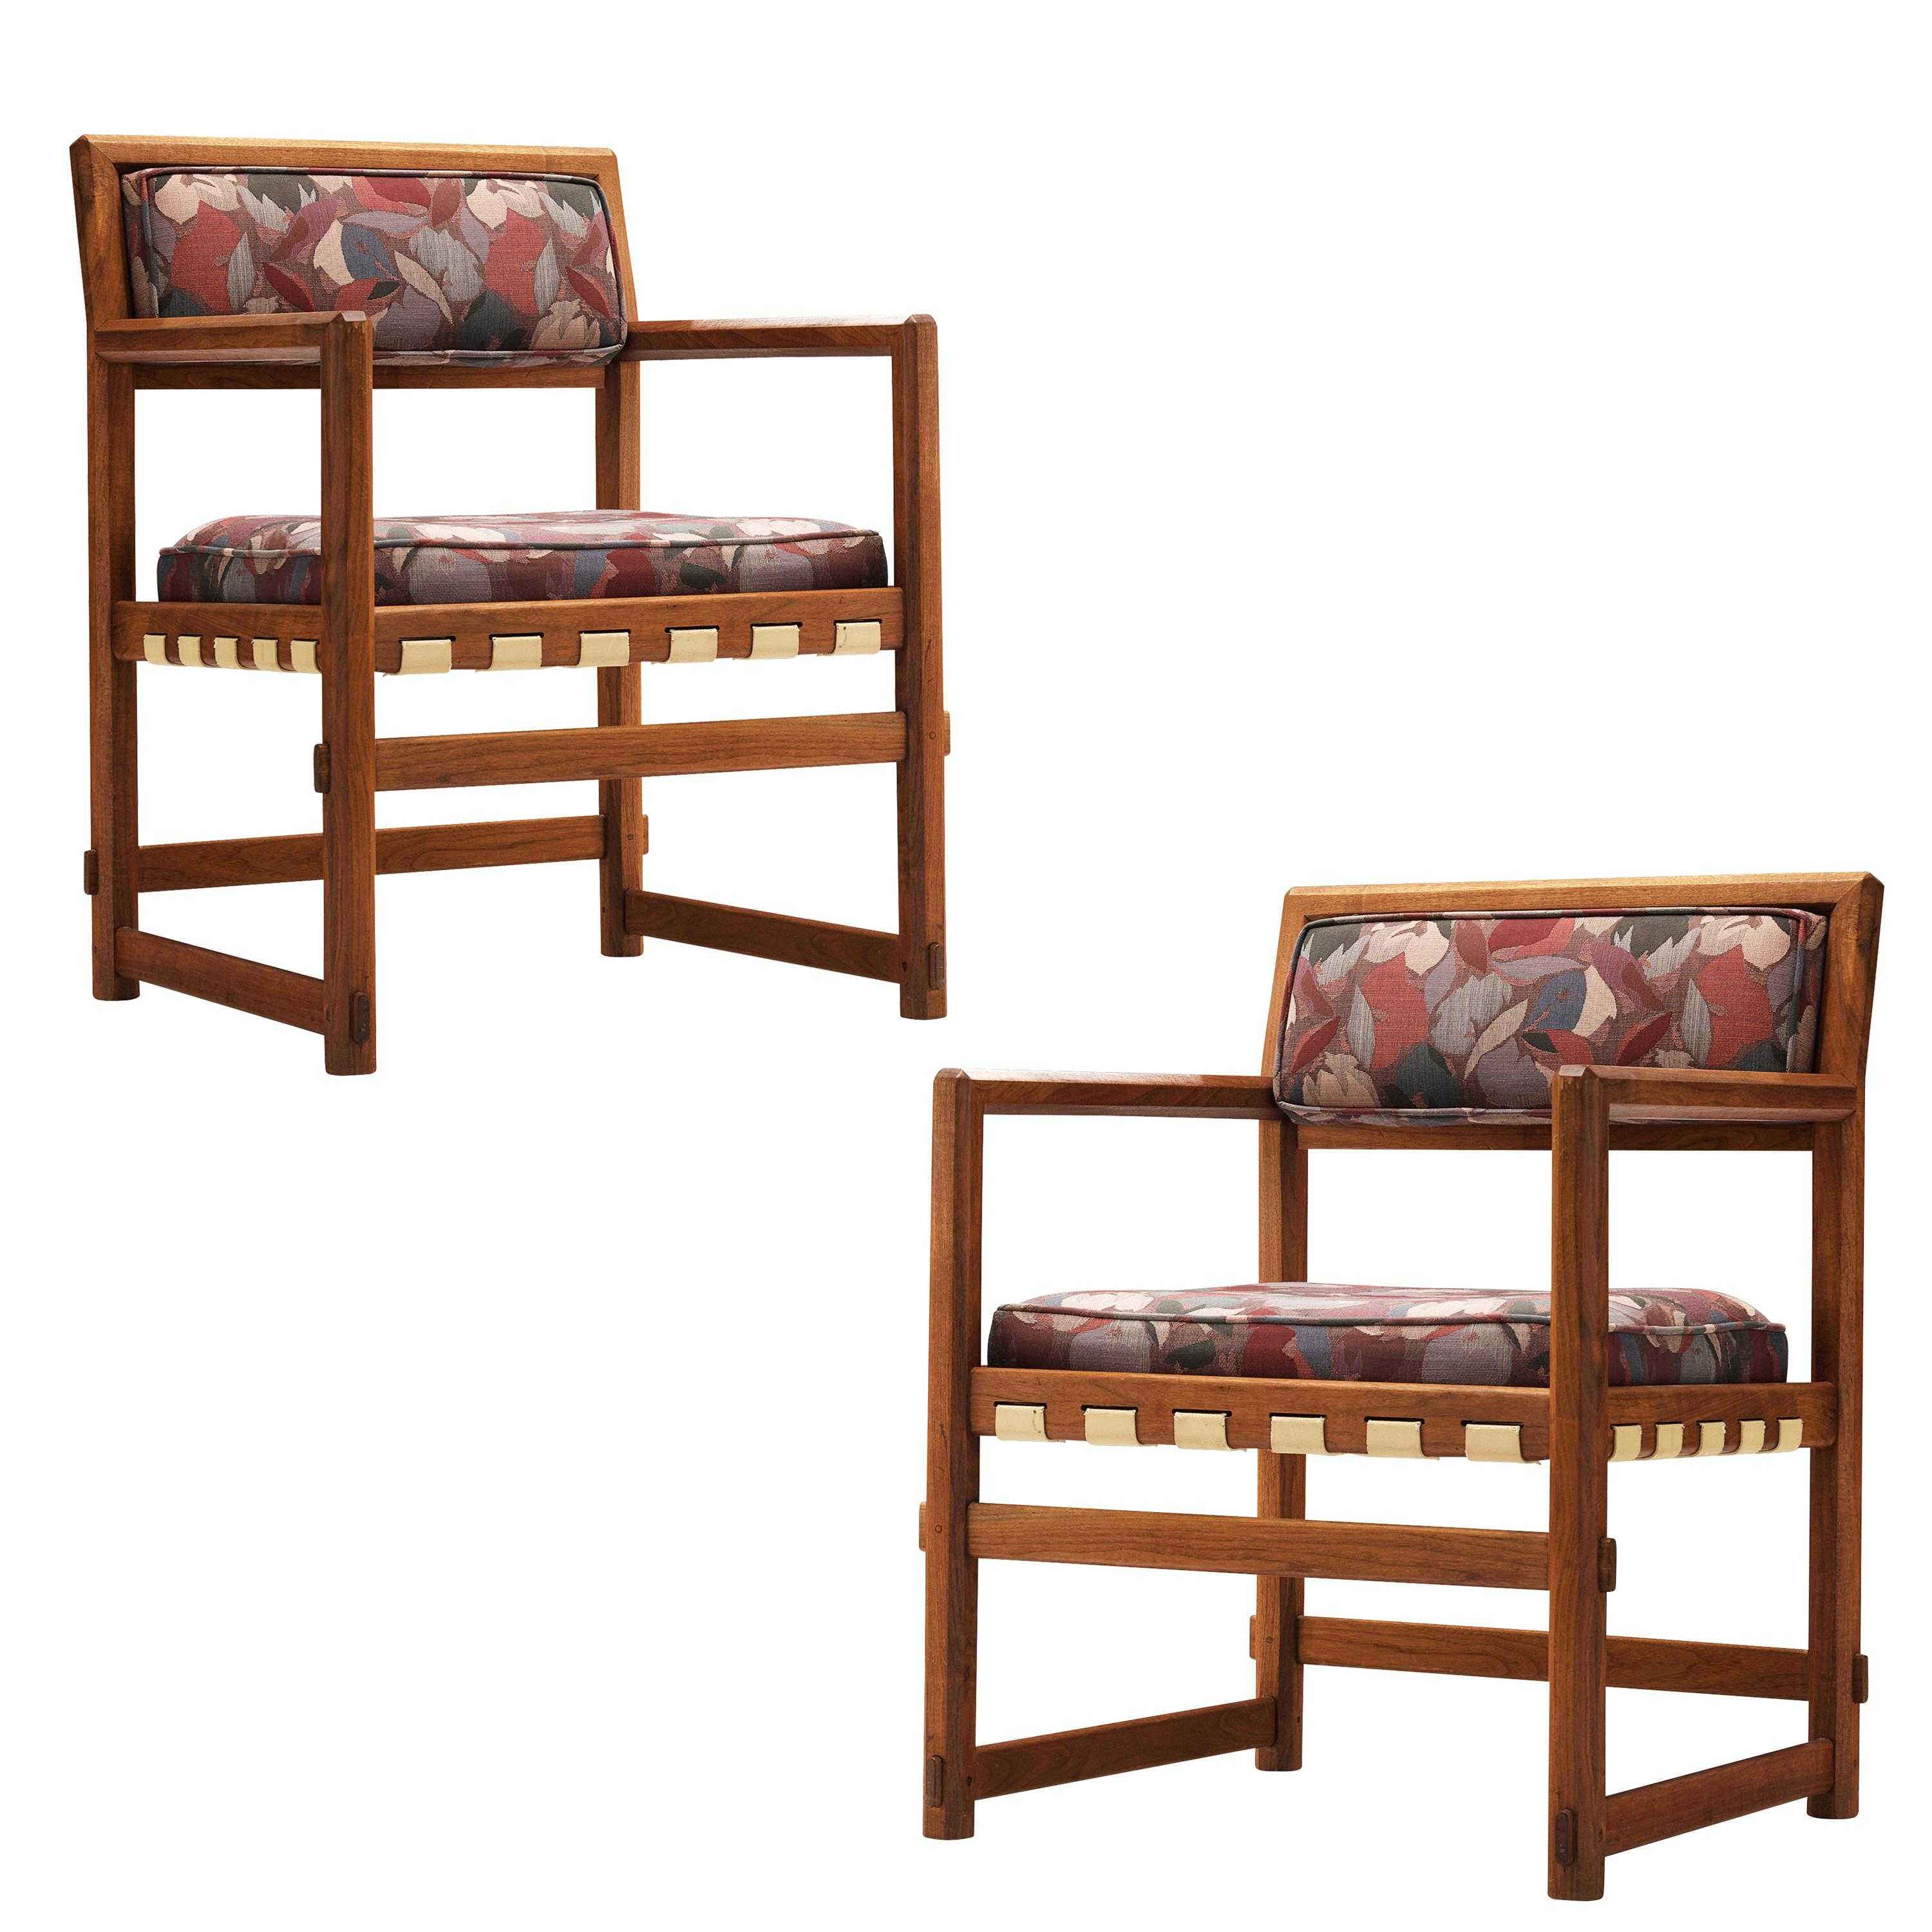 Edward Wormley Armchairs in Patterned Fabric Upholstery